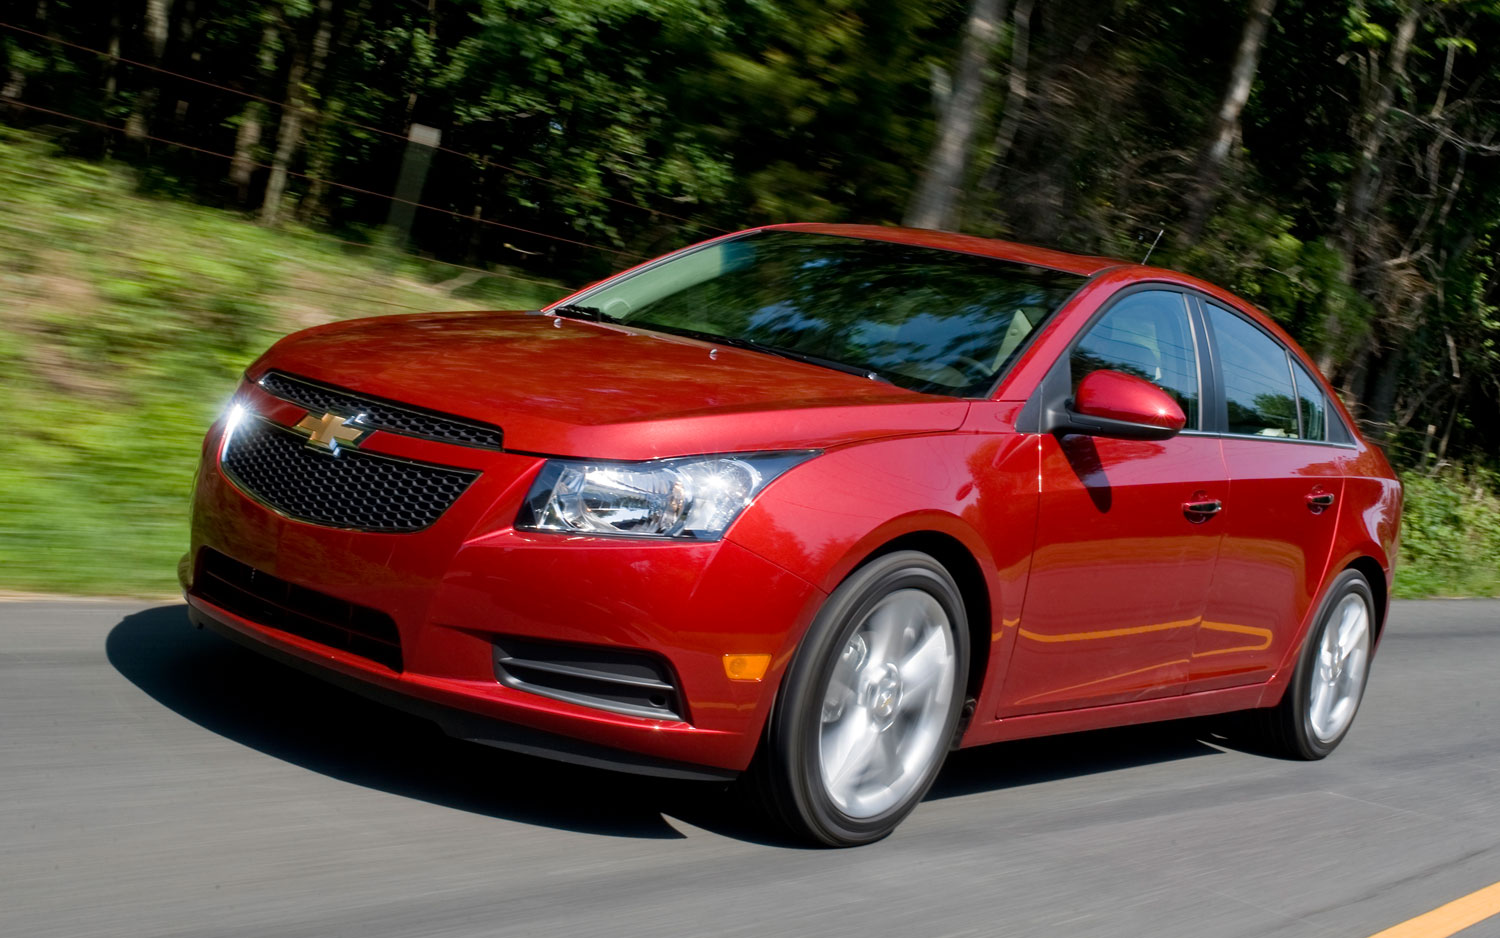 Gm Recalls 7 3 Million More Cars For Ignition Switch Fault